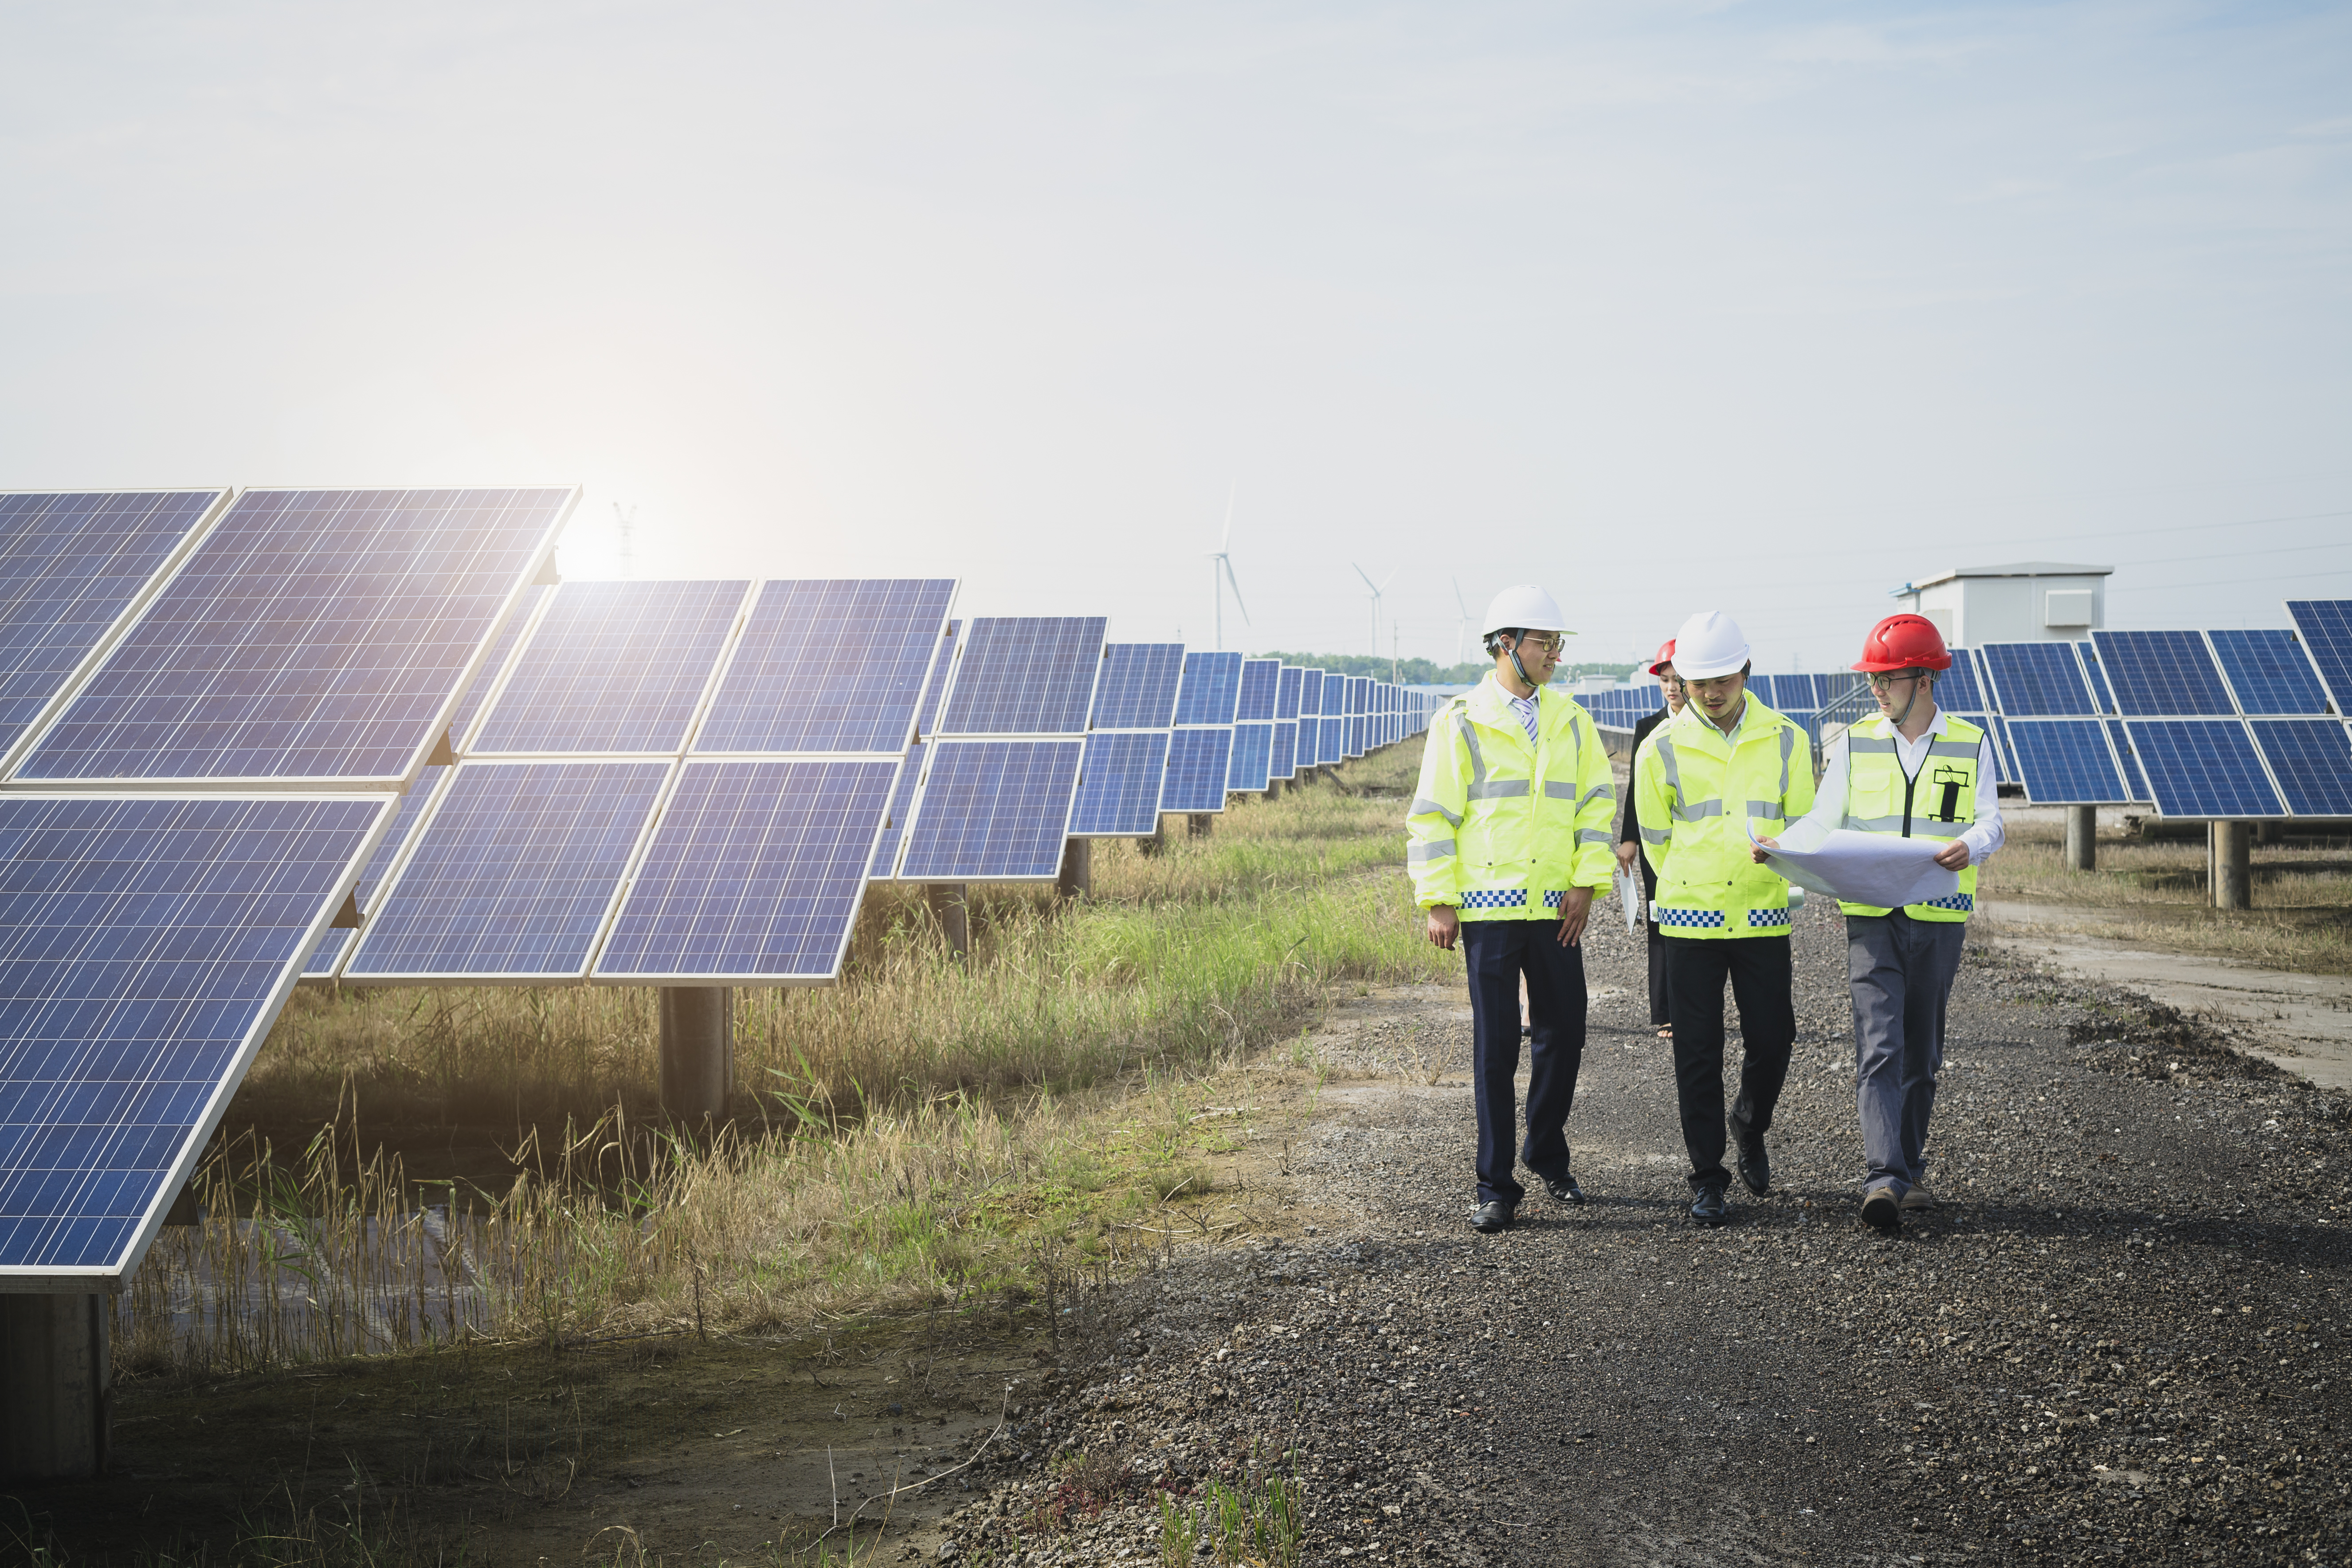 Engineers reconnaissance in green energy base